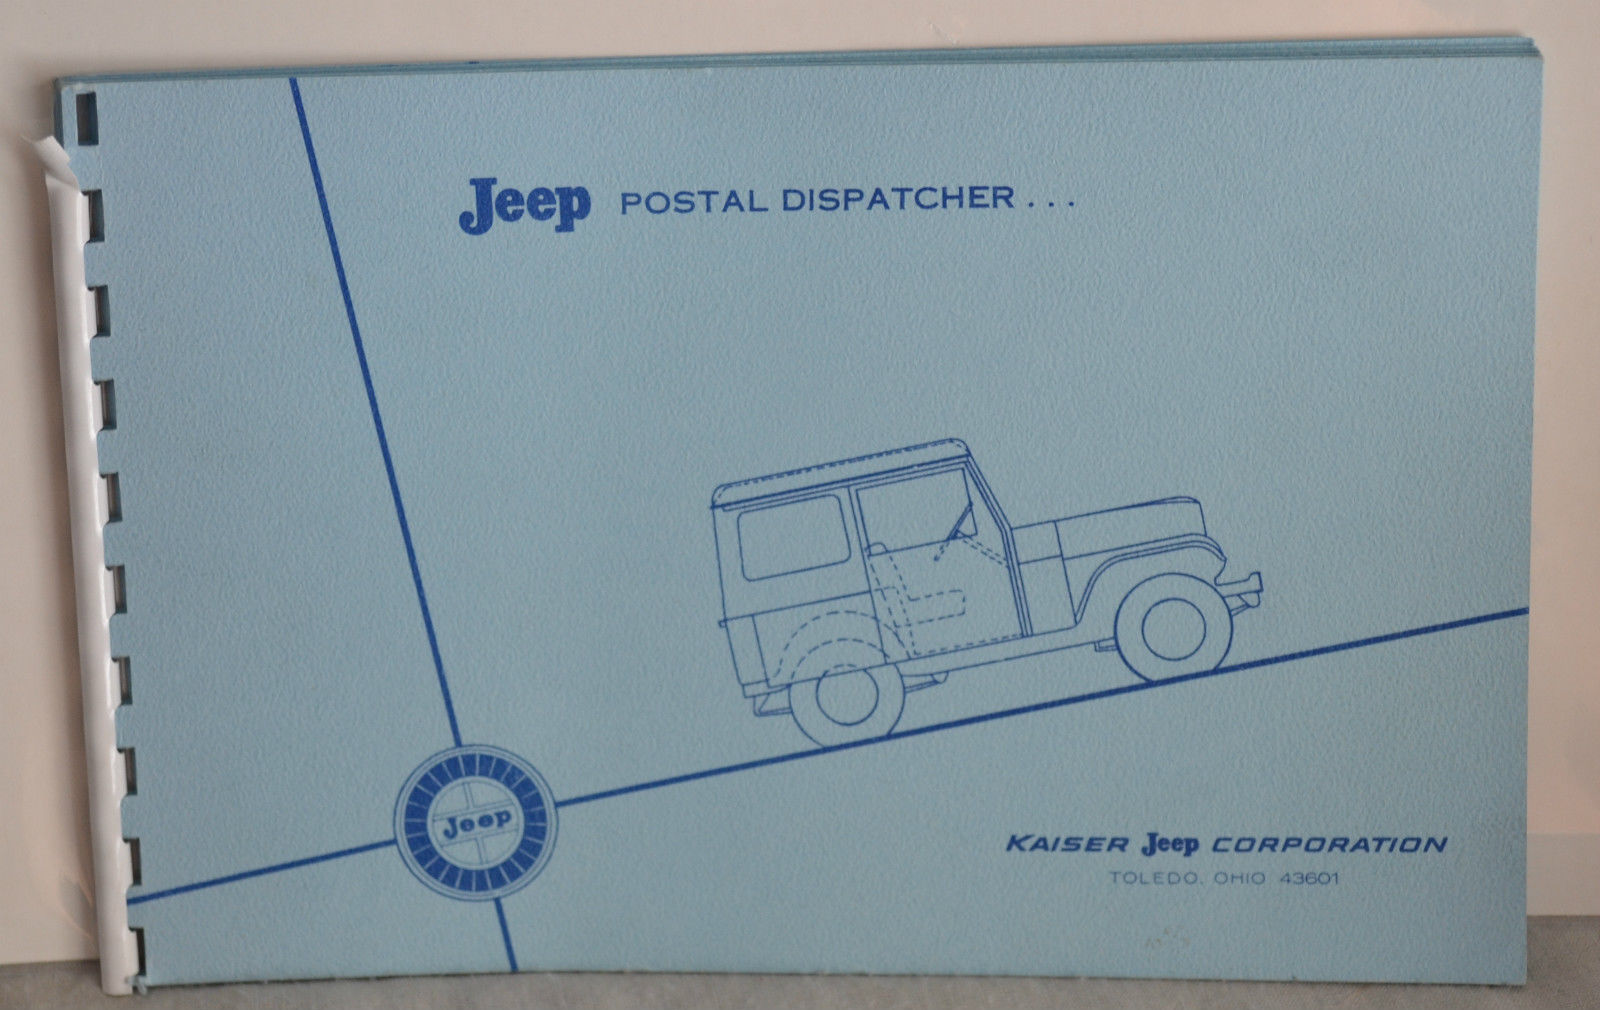 dj5-postal-jeep-dispatcher-brochure2